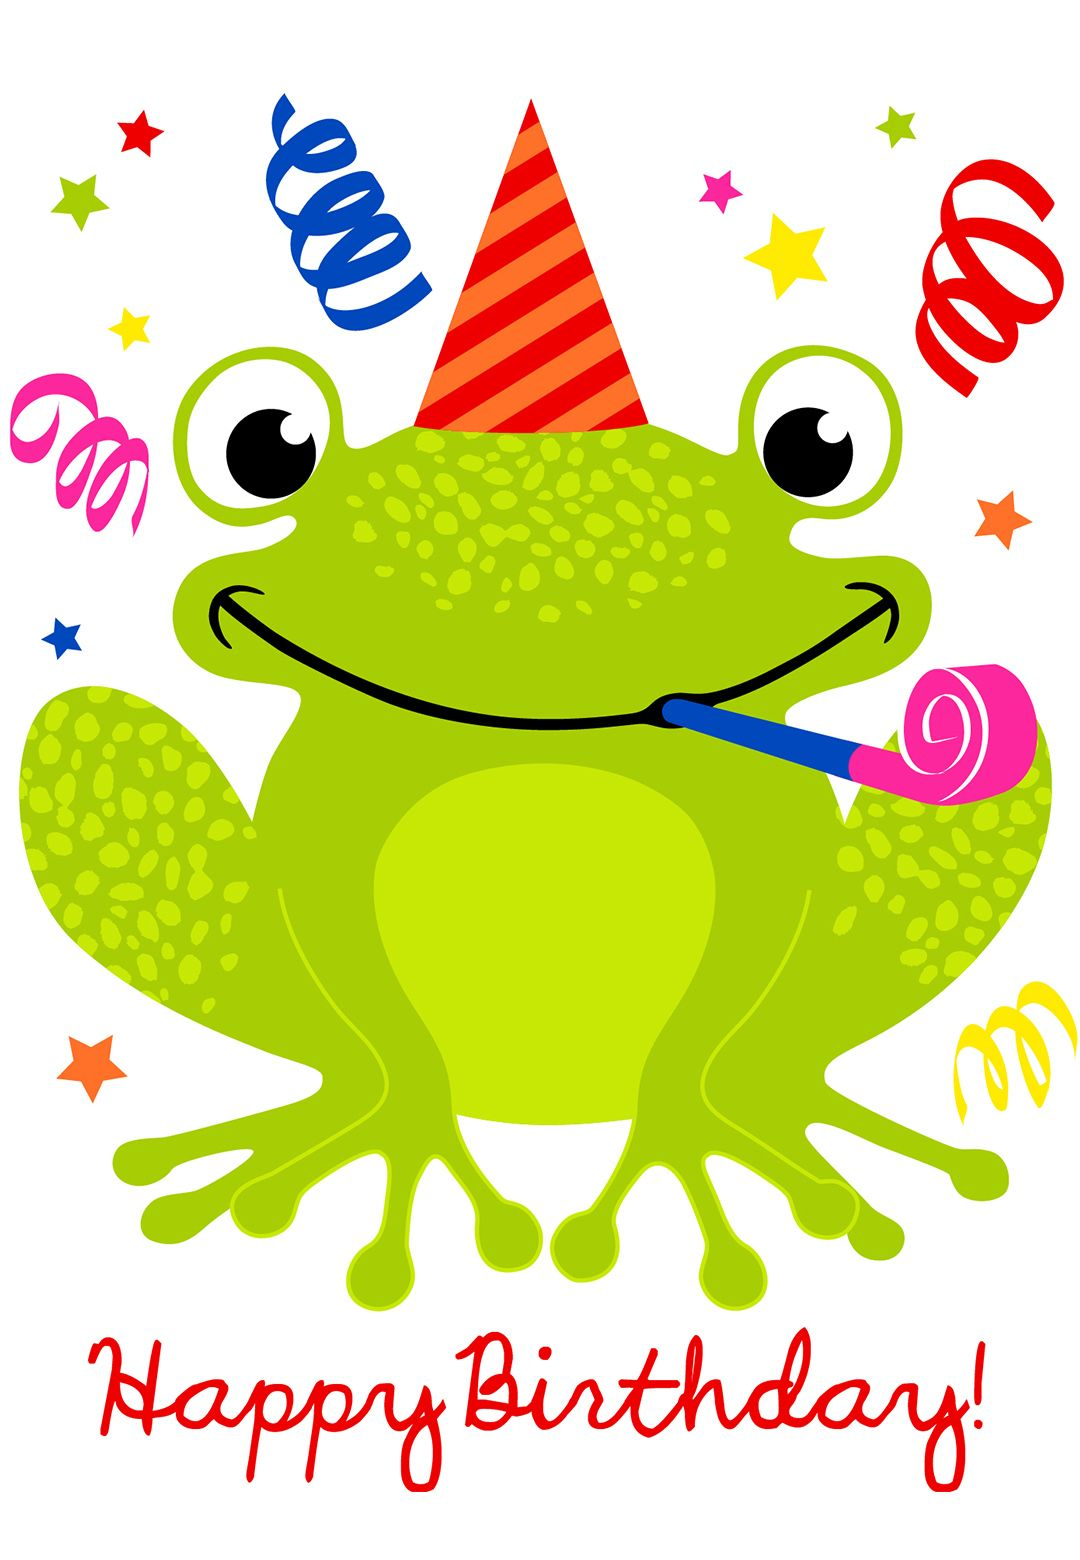 Free Printable A Happy Hopping Birthday Greeting Card – Birthday Cards Pics Free